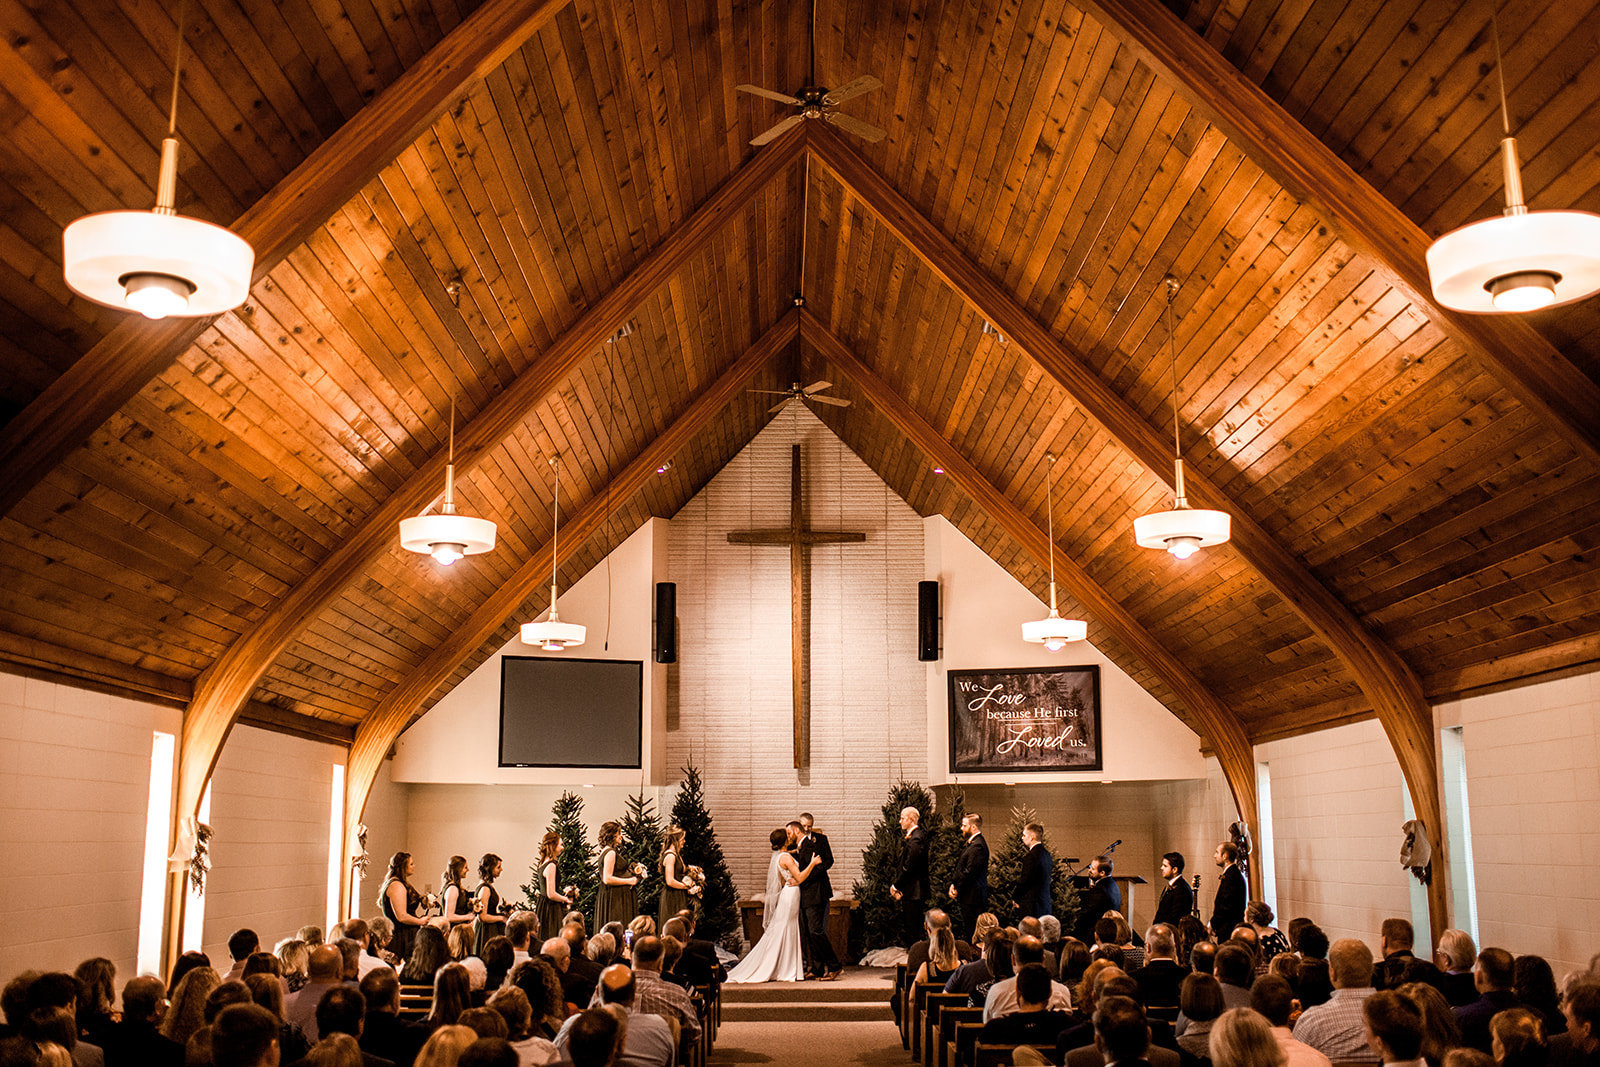 Des Moines Iowa church wedding ceremony.